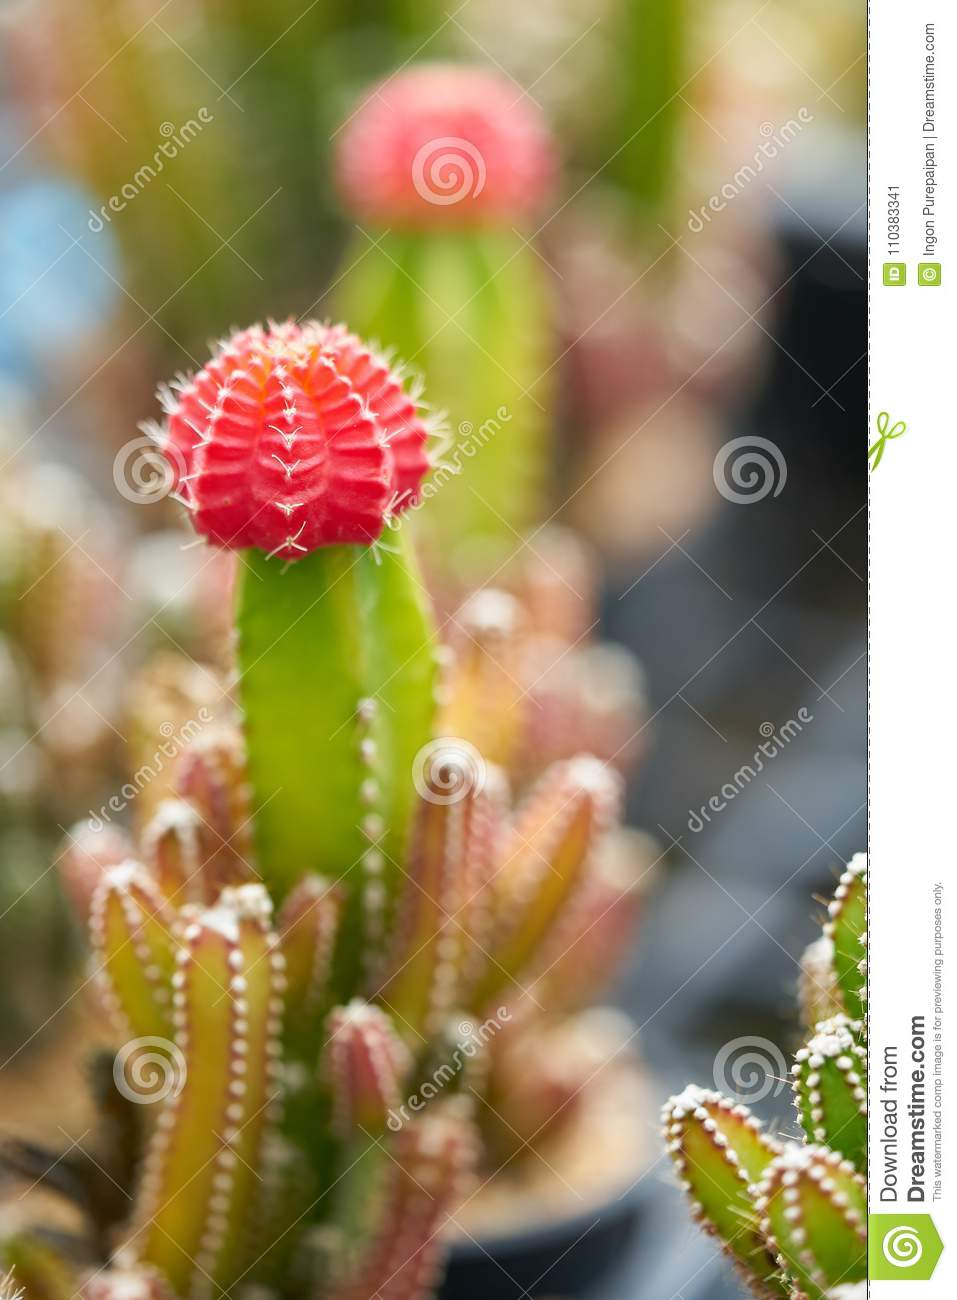 Little Colorful Cactus Plant In A Small Pot House Plants For Home